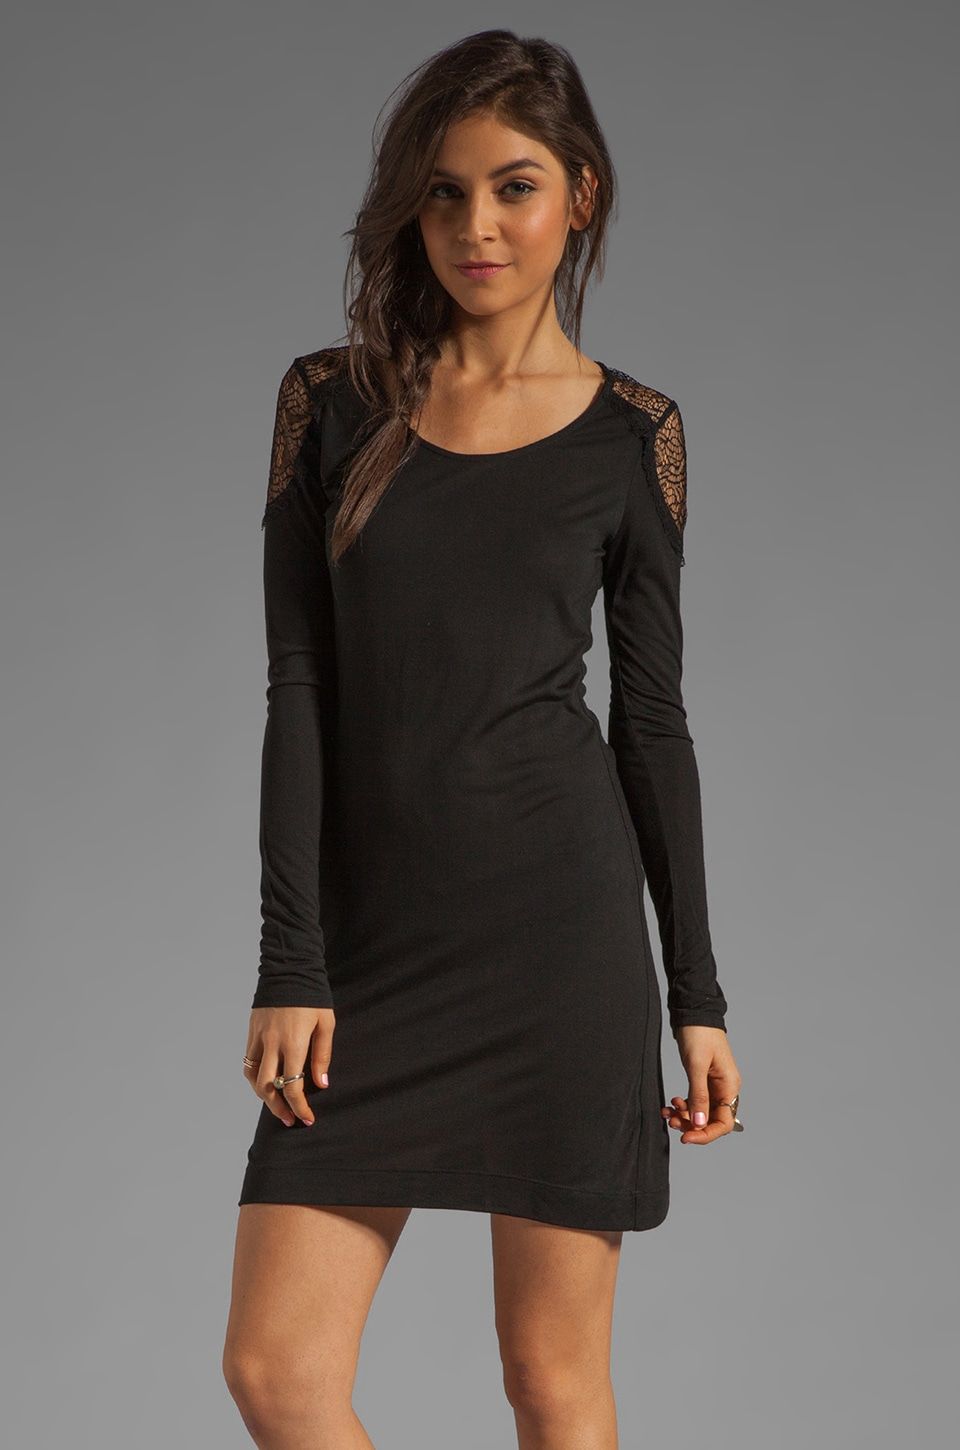 LA Made Long Sleeve Lace Inset Dress in Black